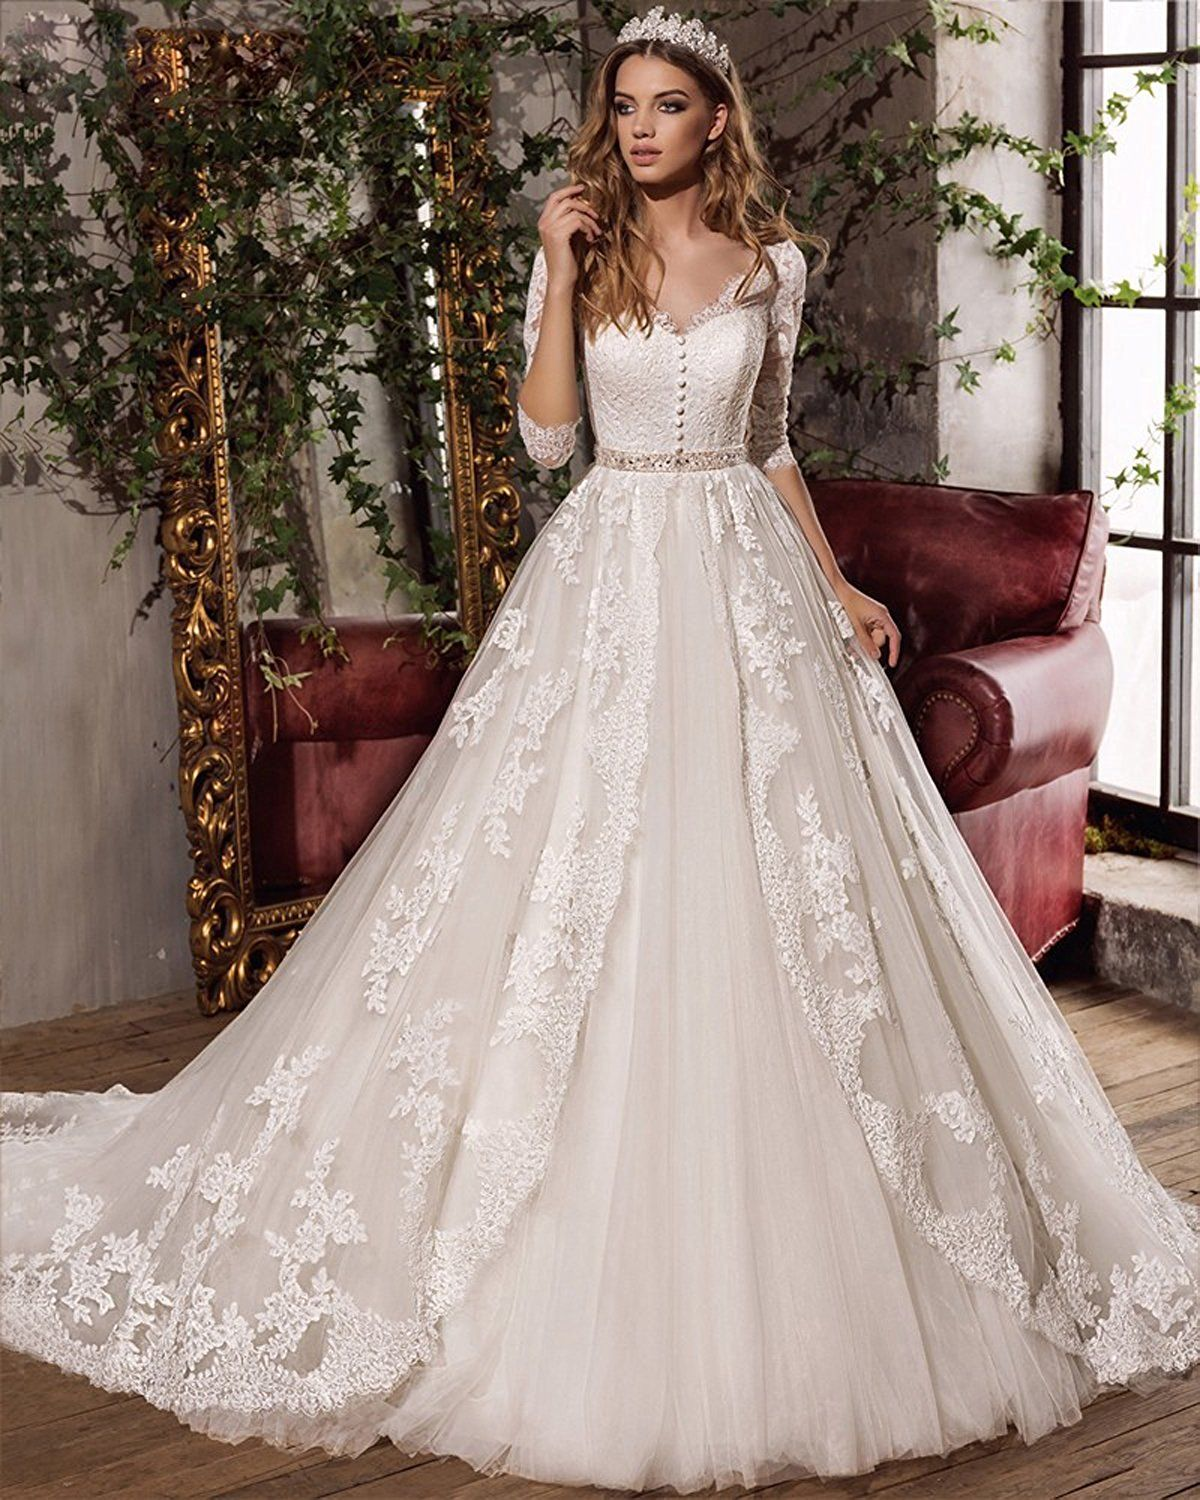 Vintage wedding dresses with sleeves  Wedding Dresses wedding dresses  wedding dresses lace  wedding